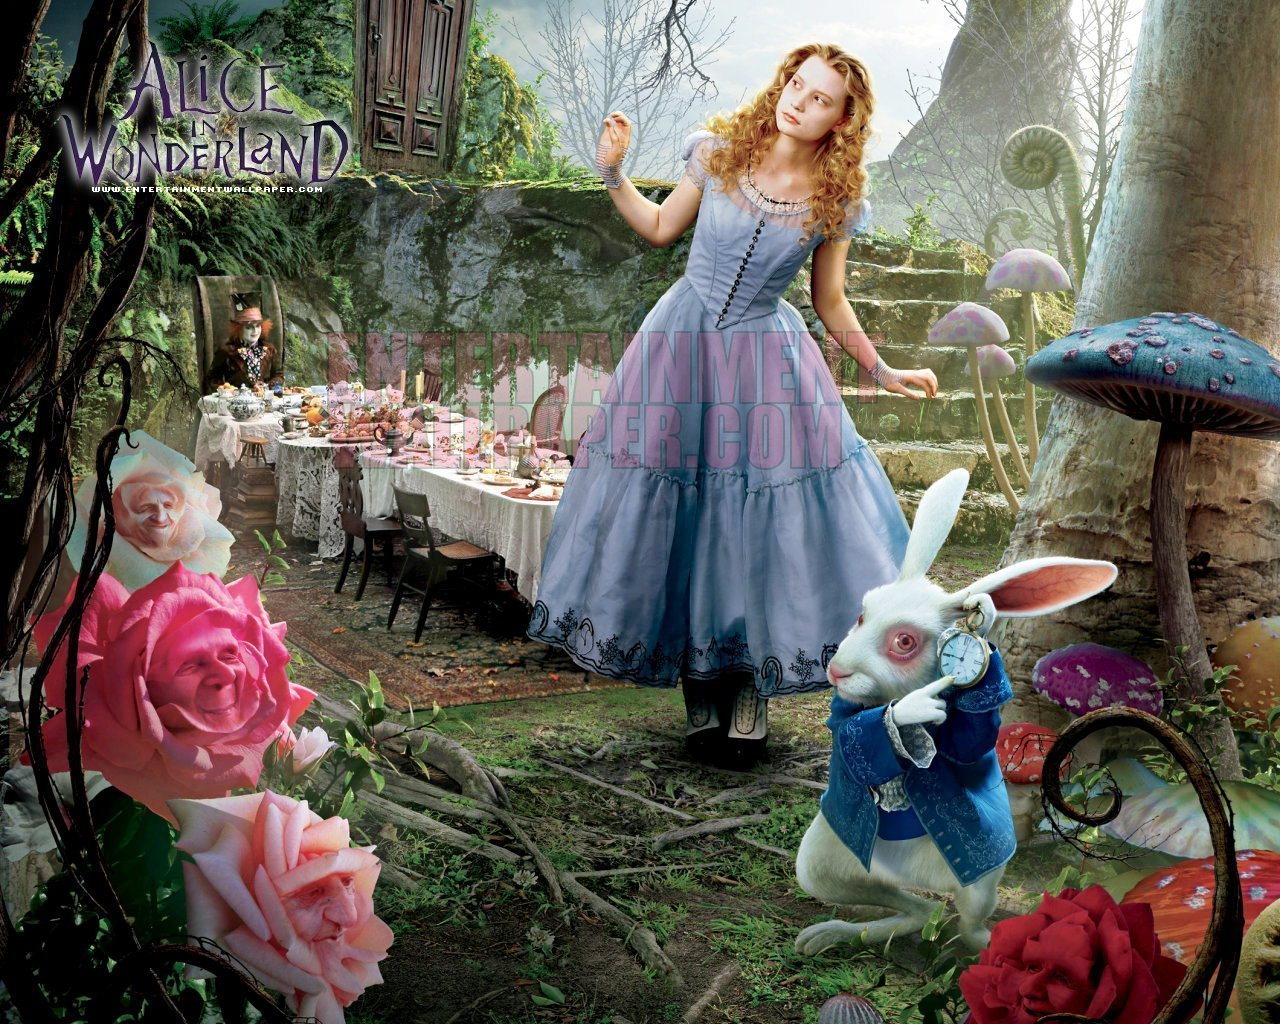 alice in wonderland coming of age Alice's adventures in wonderland is at heart a coming of age story in it, the innocent young alice ventures into wonderland, where she has a series of absurd, marvelous, and dangerous adventures these strange experiences cause her to lose some of her childish innocence author lewis carroll is well-known for his love of the absurd.